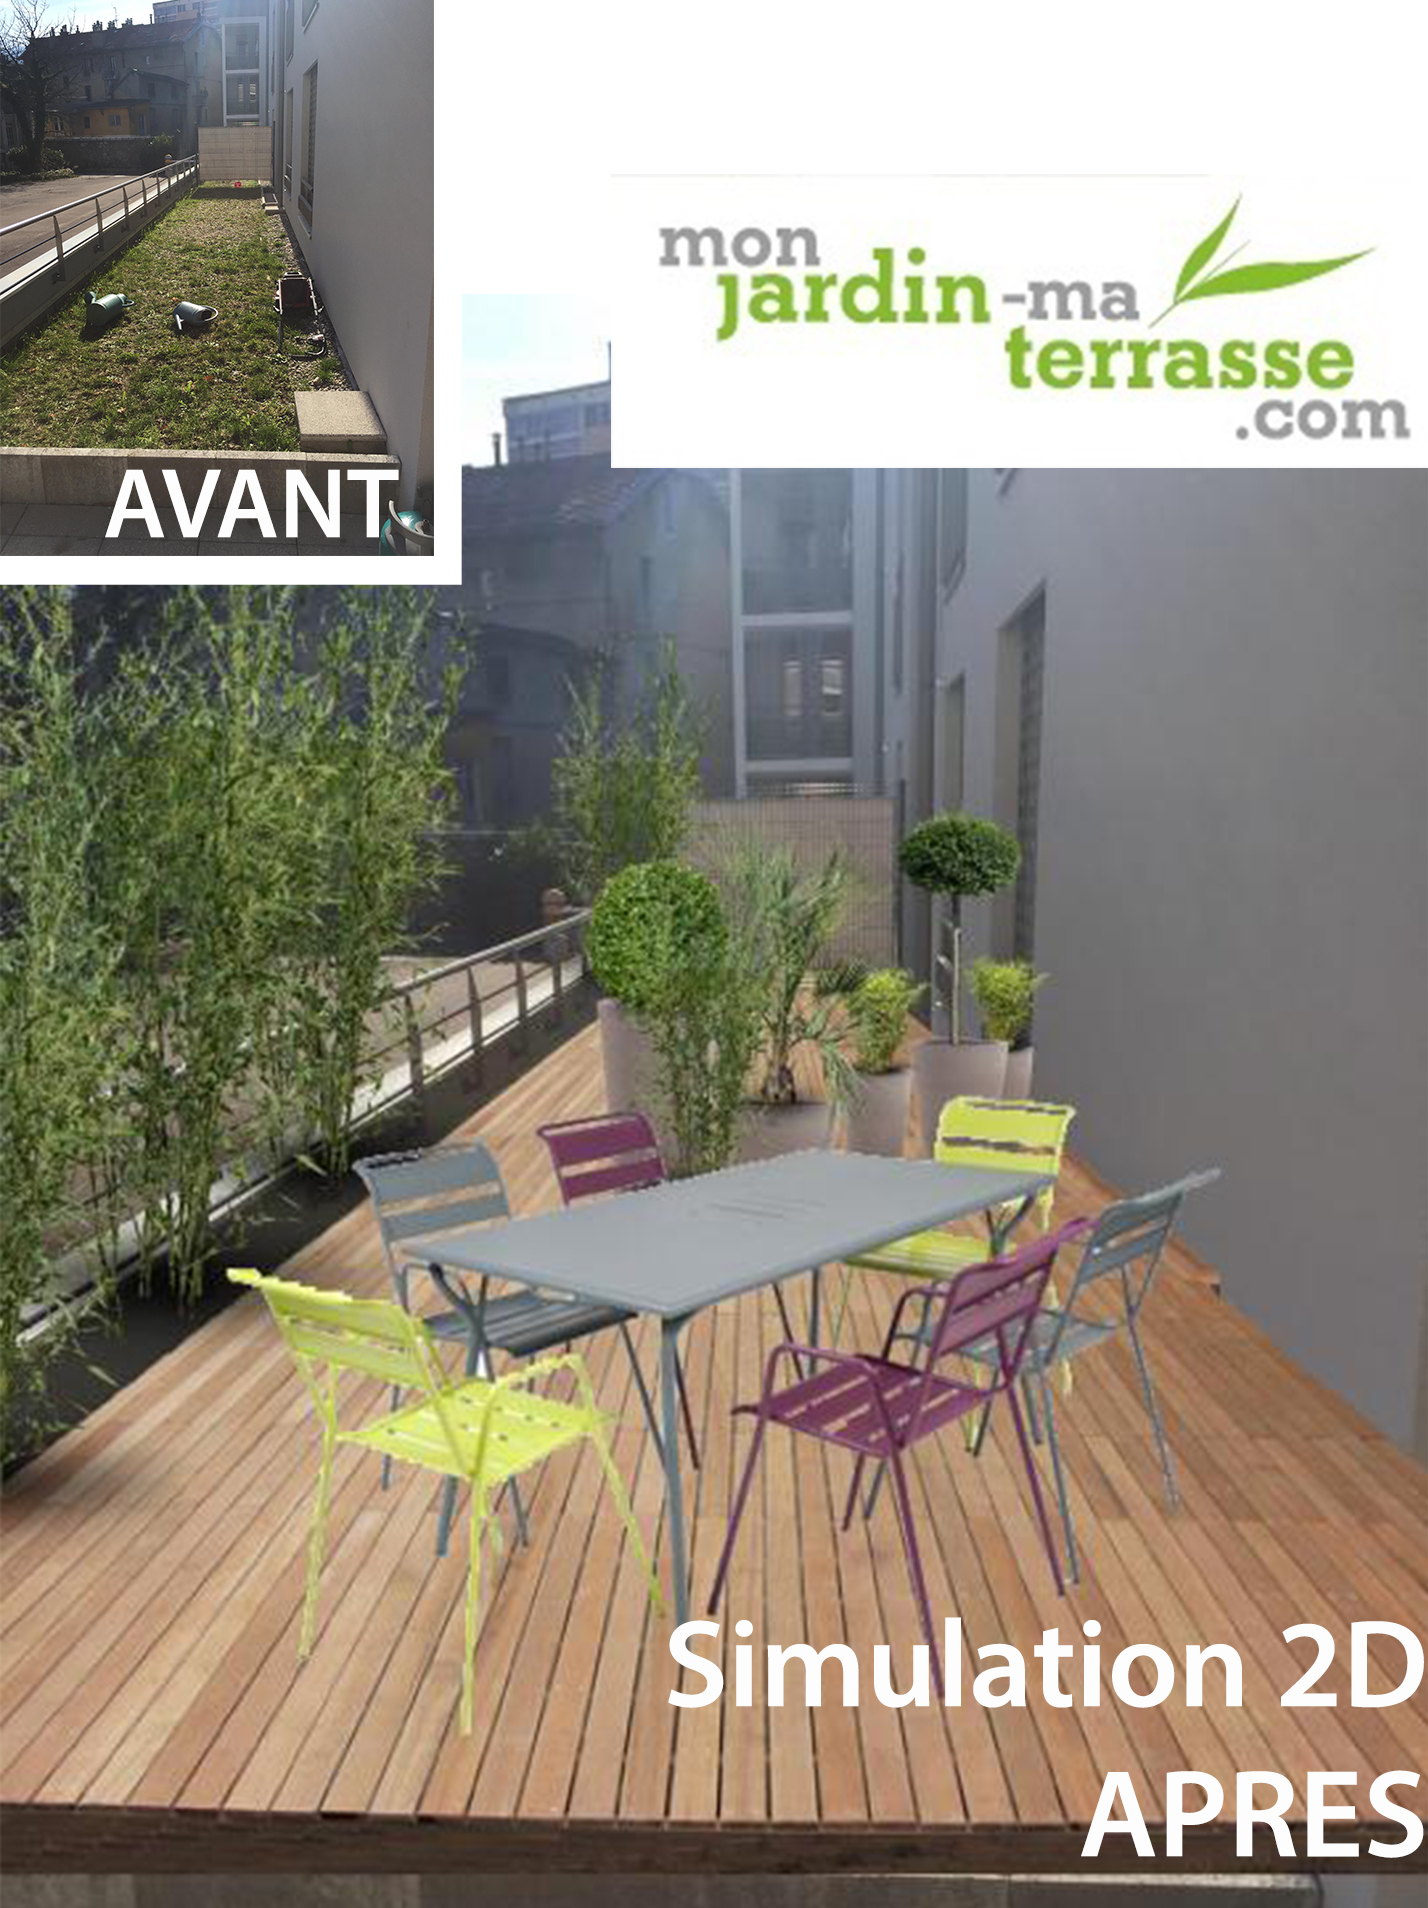 am nagement du toit terrasse d un appartement monjardin